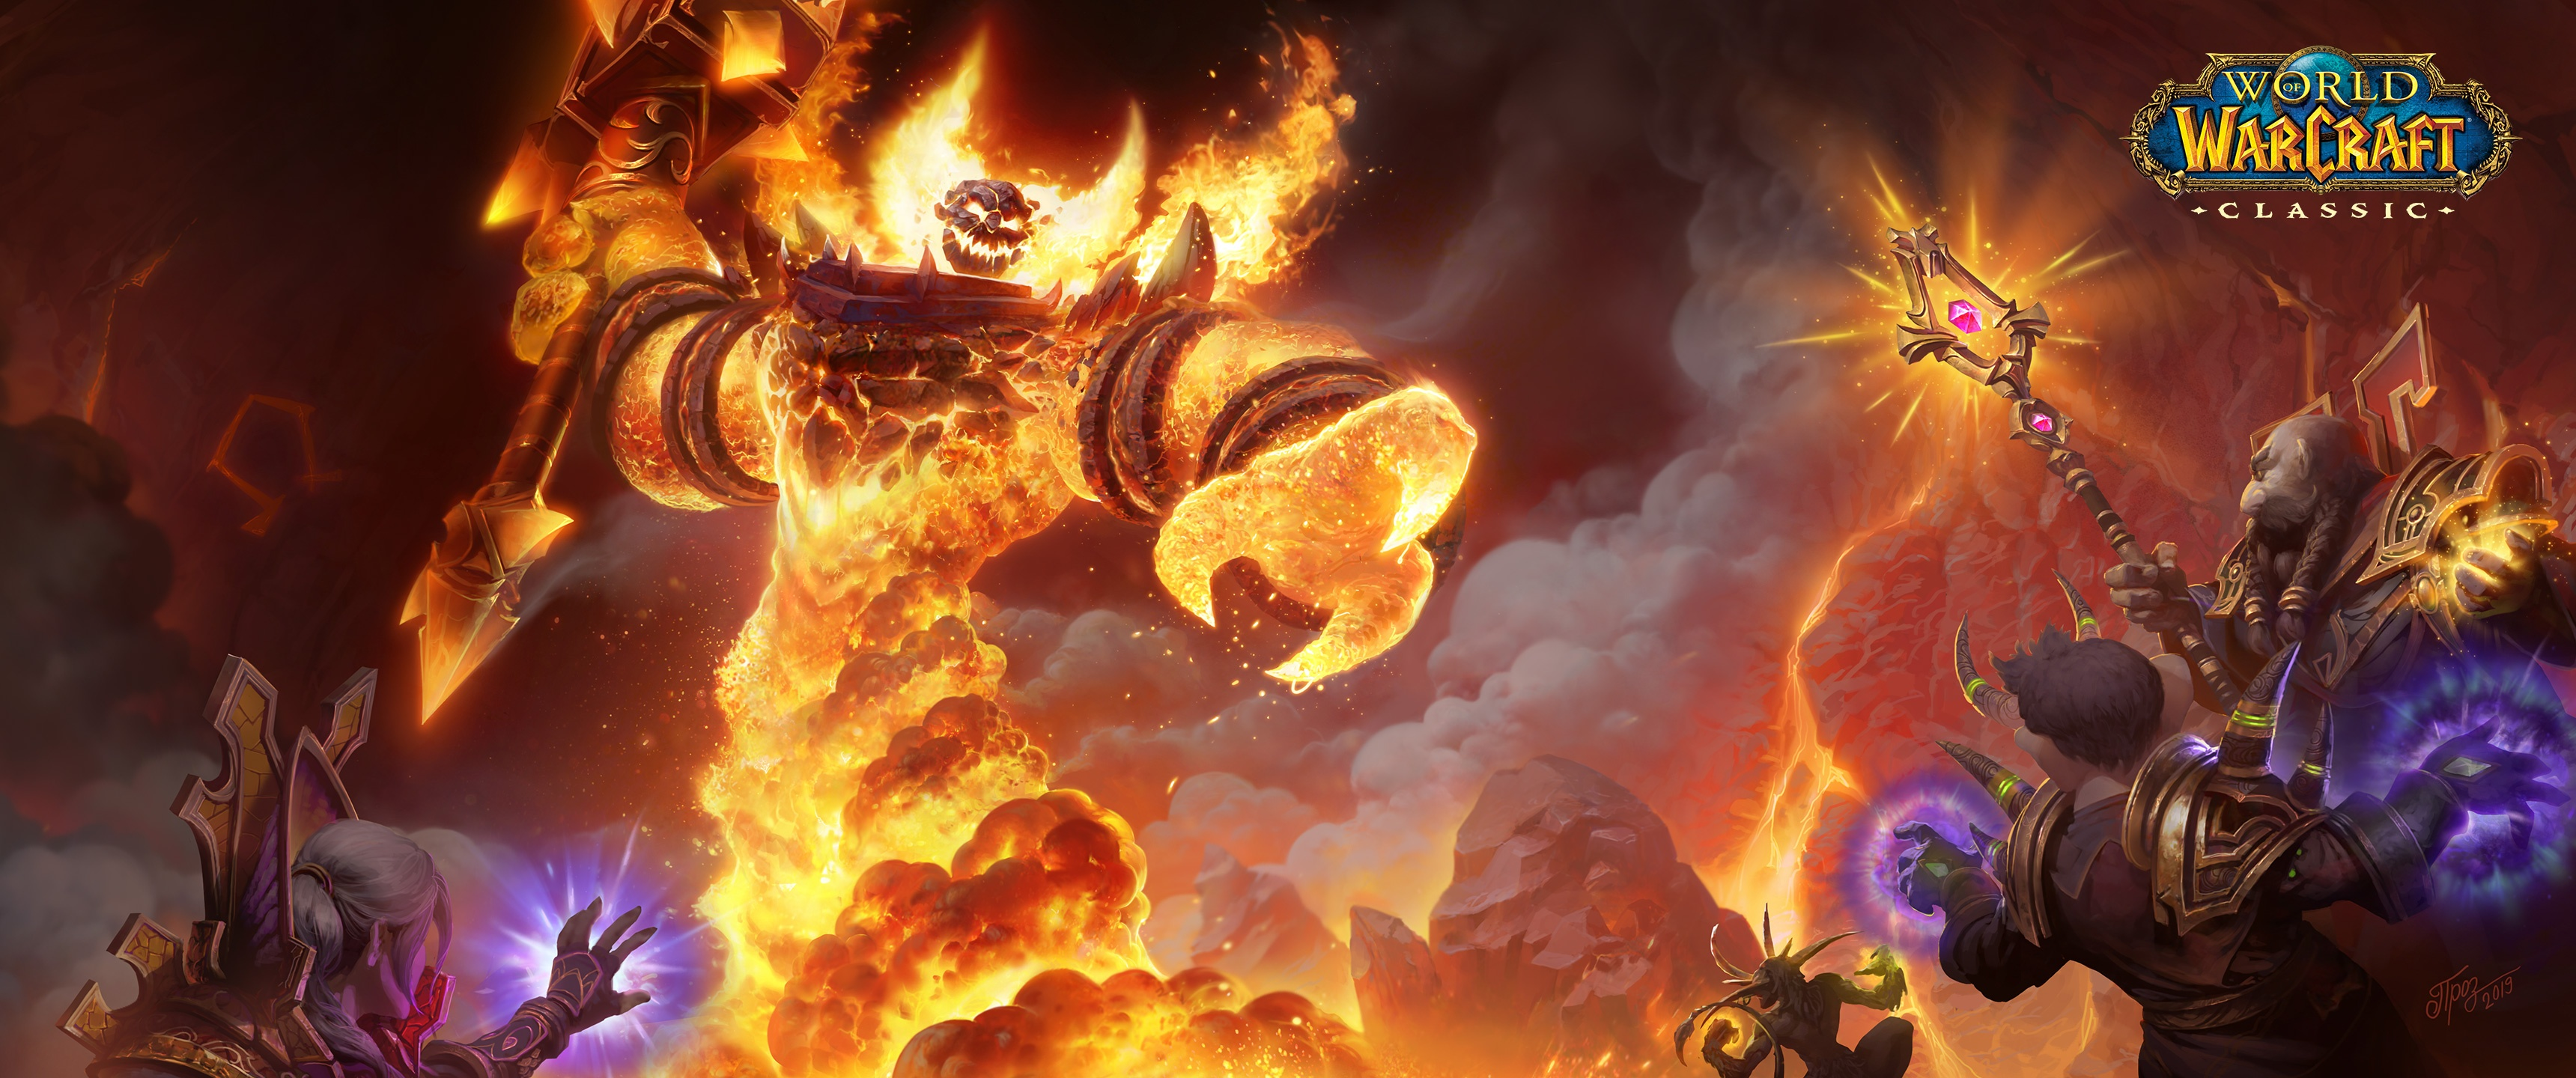 World of Warcraft Classic - Games - Quarter To Three Forums